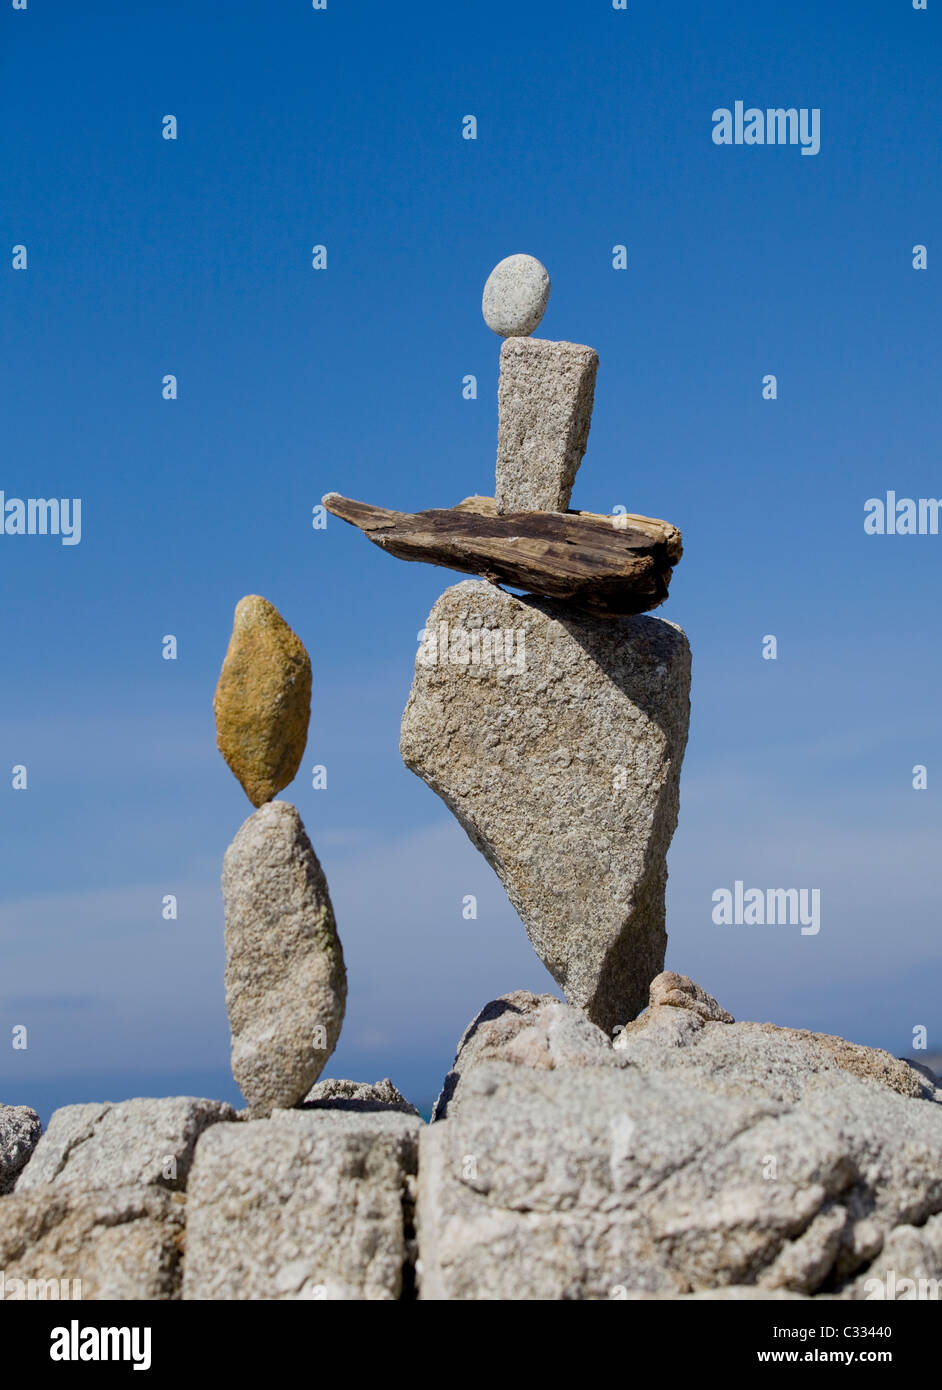 Rock balancing - finely balanced and creative stone stacking - Stock Image